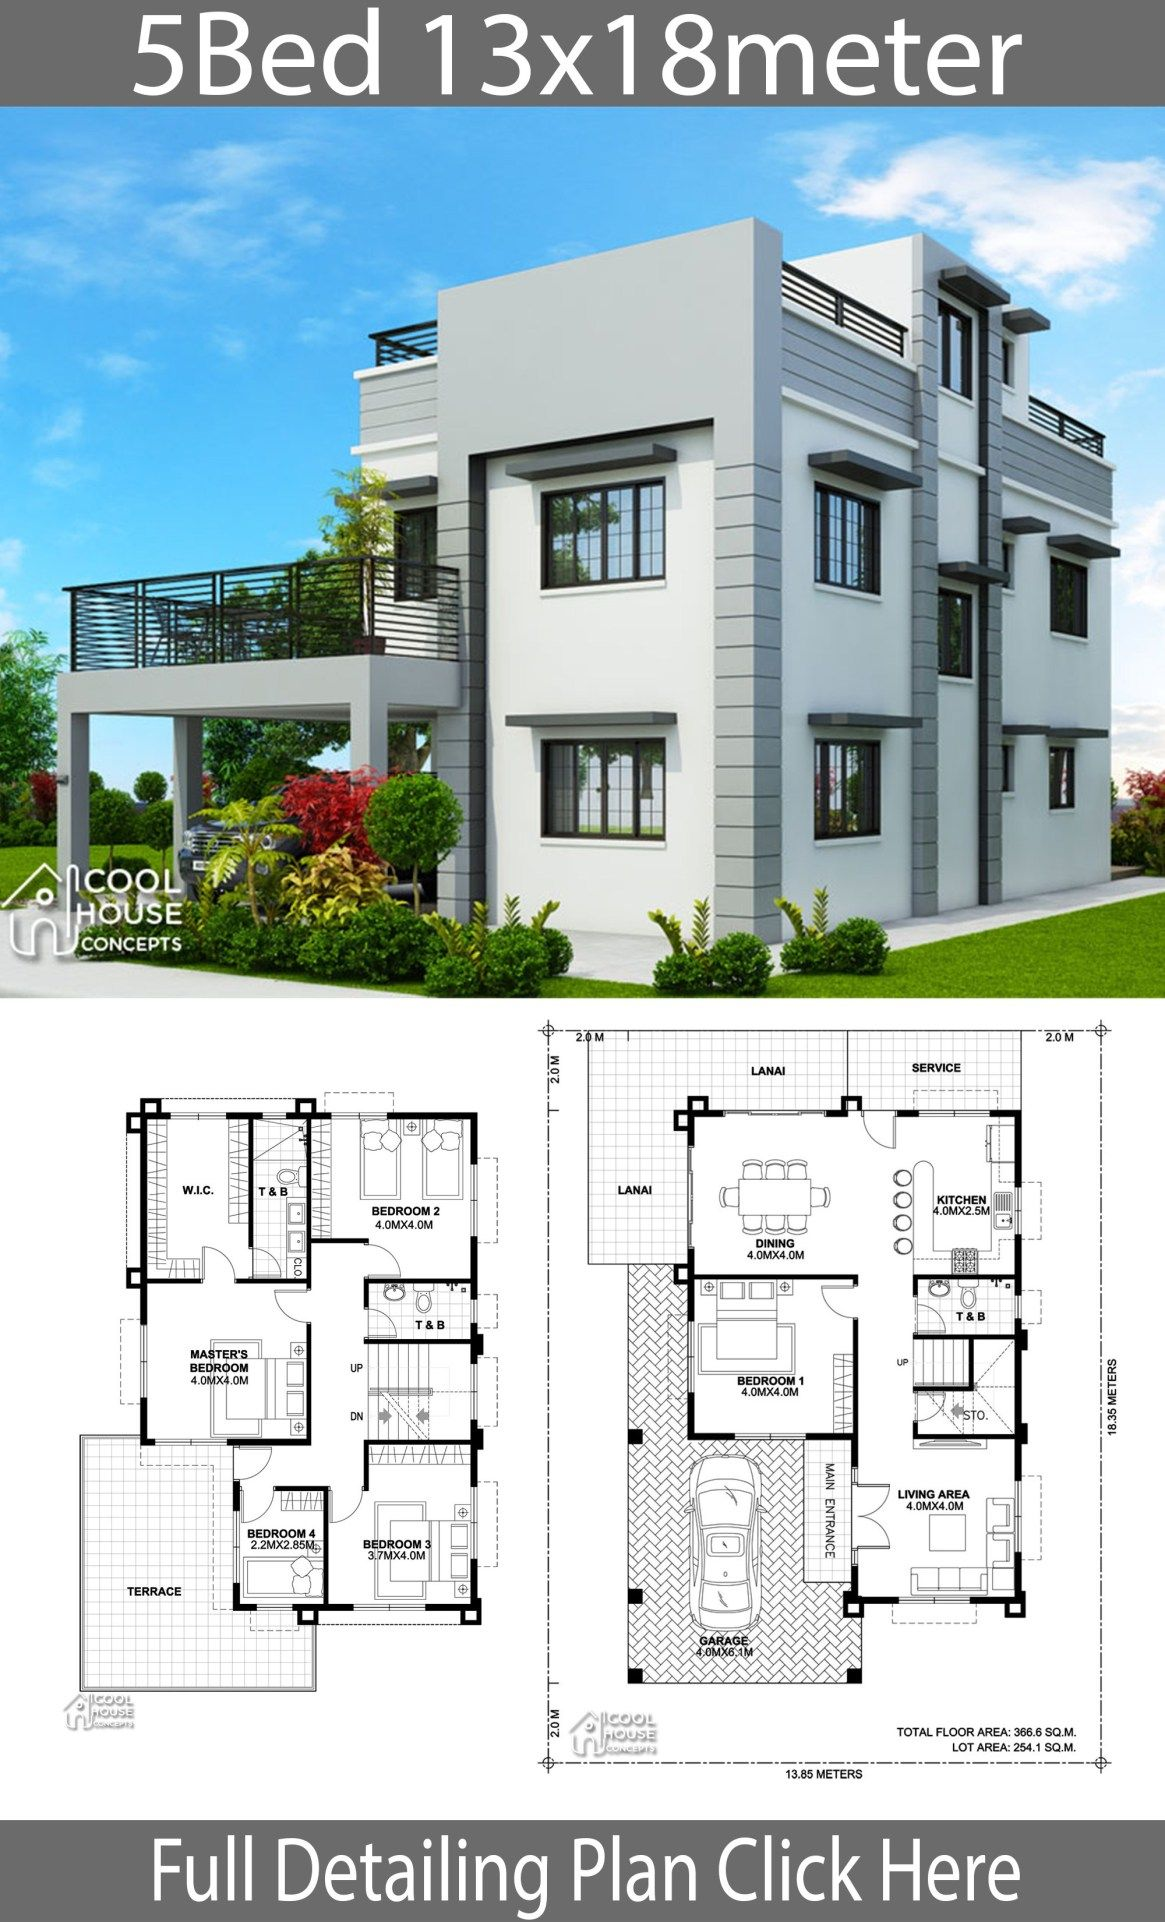 Home Design Plan 13x18m With 5 Bedrooms Home Design With Plansearch Modern House Plans Modern House Floor Plans Duplex House Design